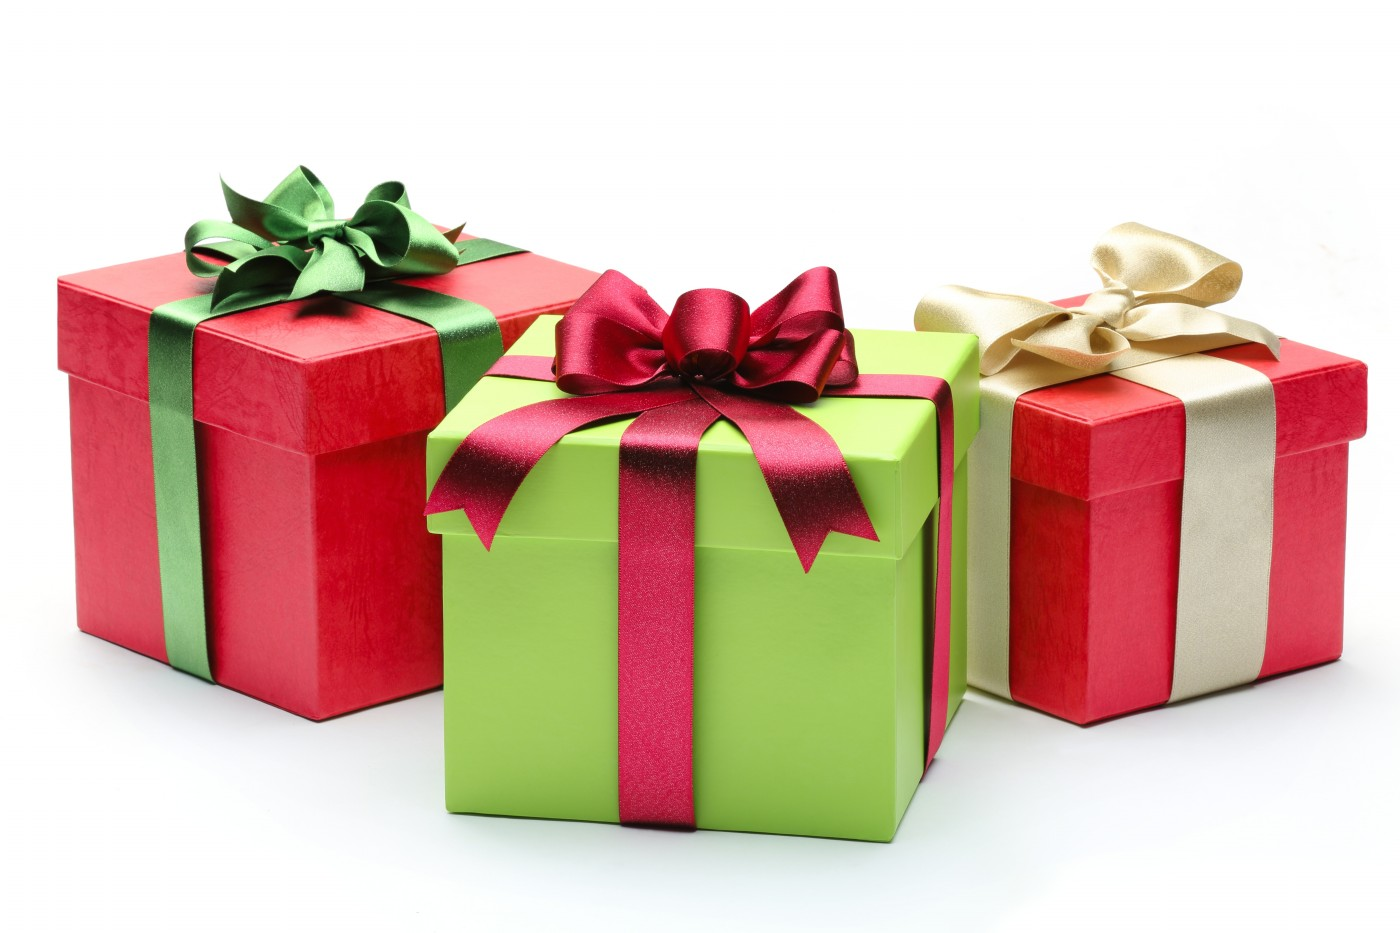 Commercial gift